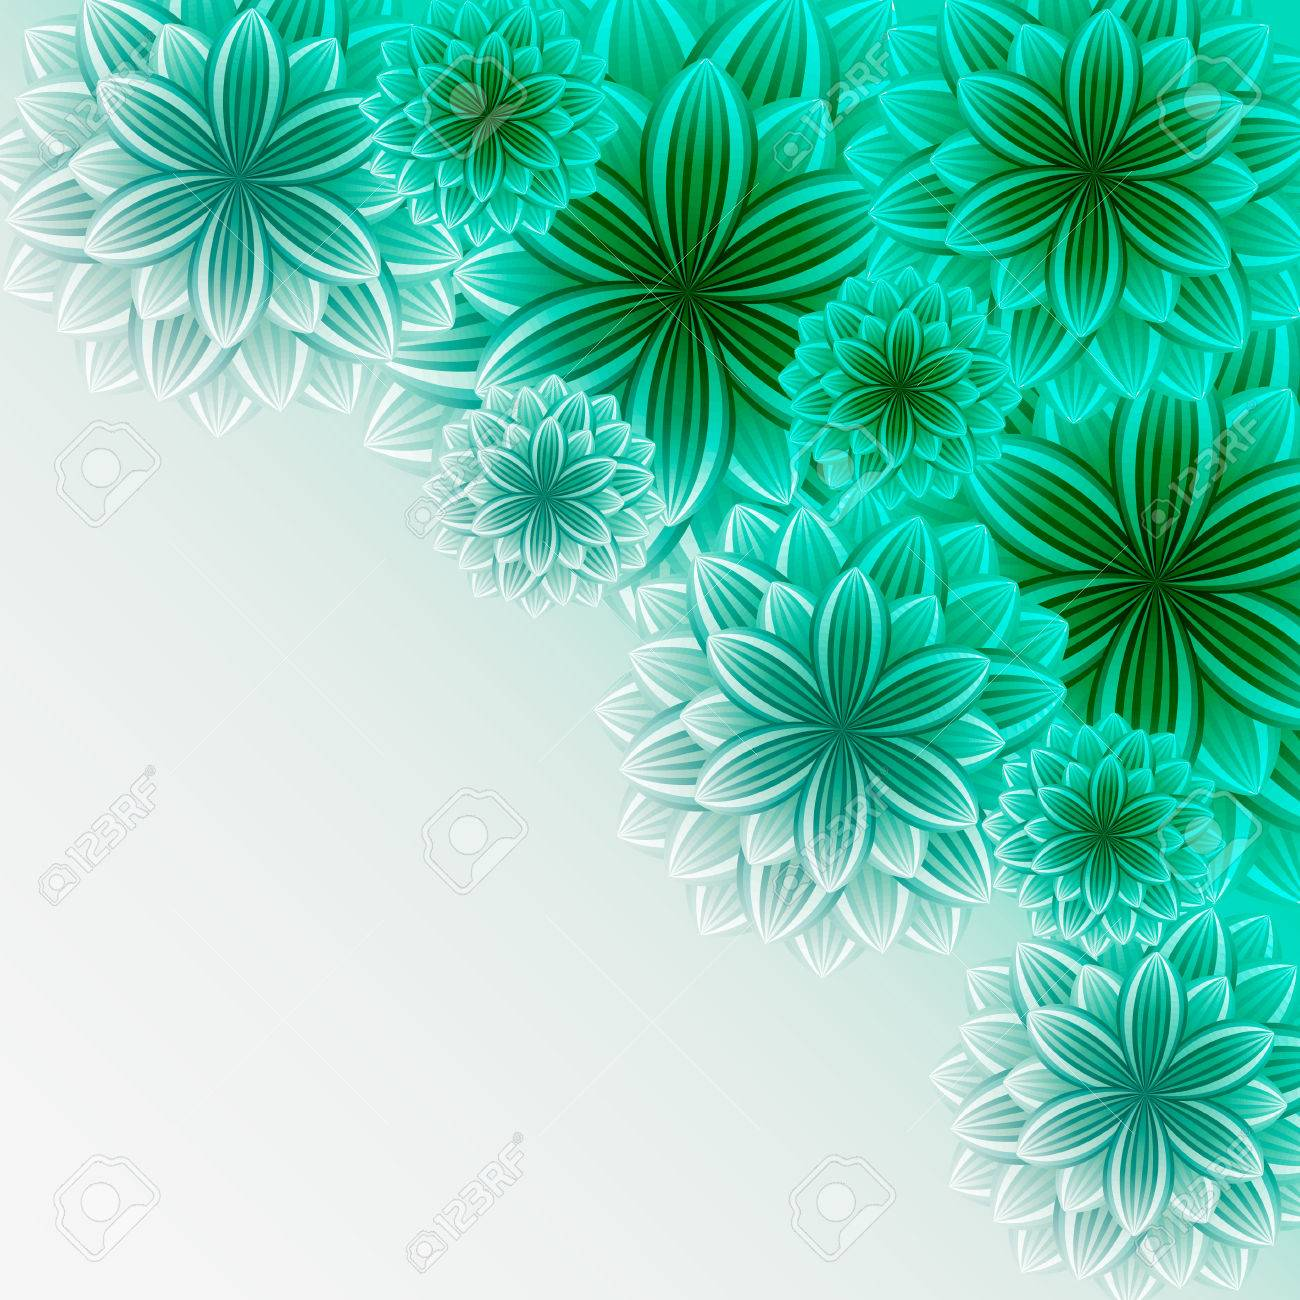 Beautiful Lace Background With Green Flowers Stylish Trendy Romantic  Wallpaper. Greeting Or Invitation Card For